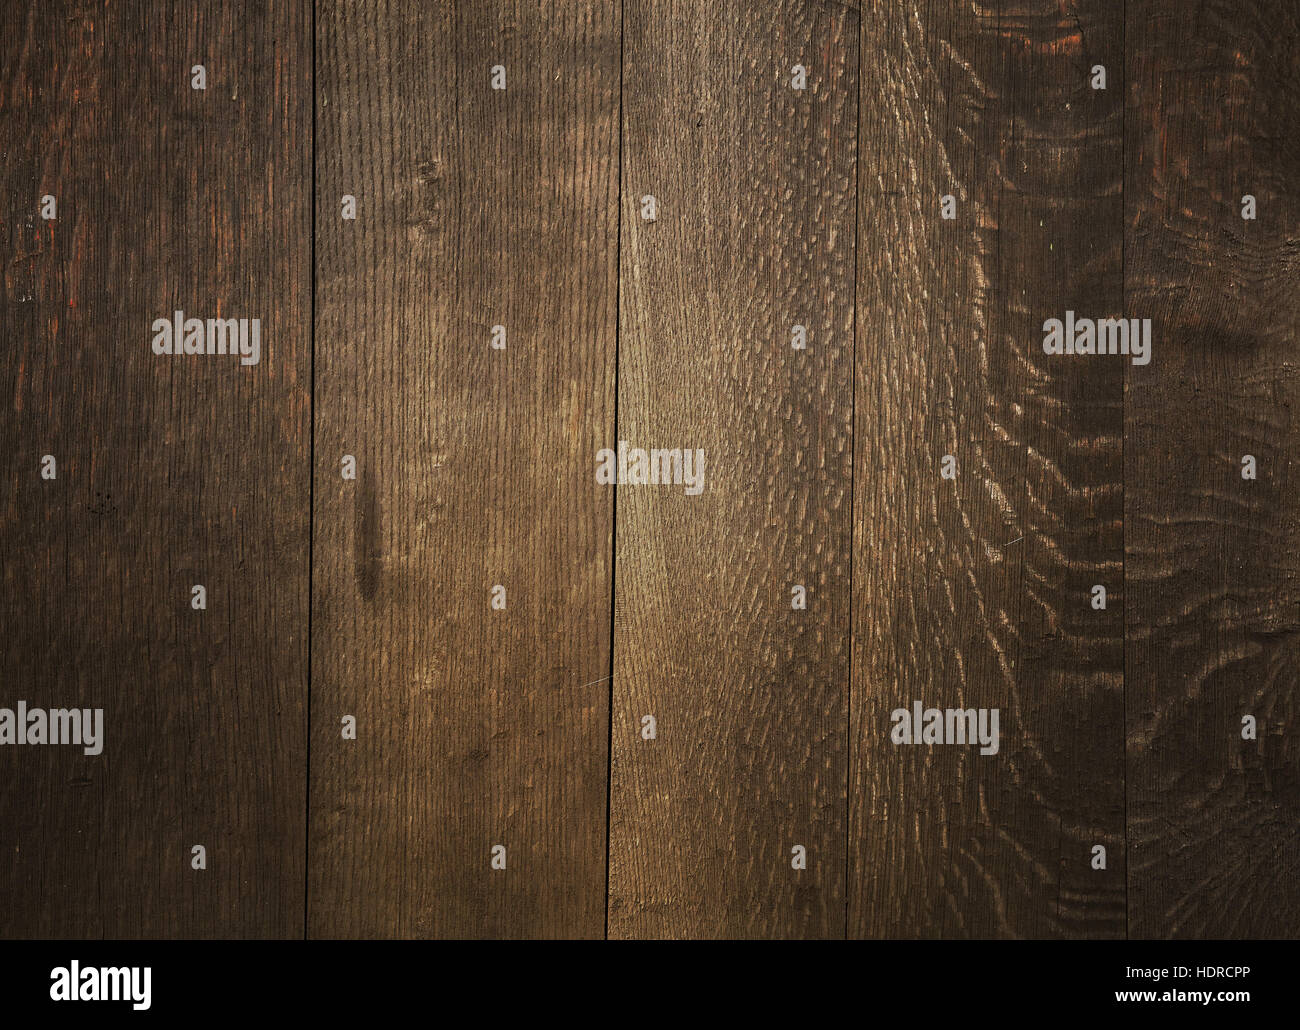 dark brown wood floors background. Old vintage aged grunge dark brown wooden floor planks texture background  with light center and shaded border edges